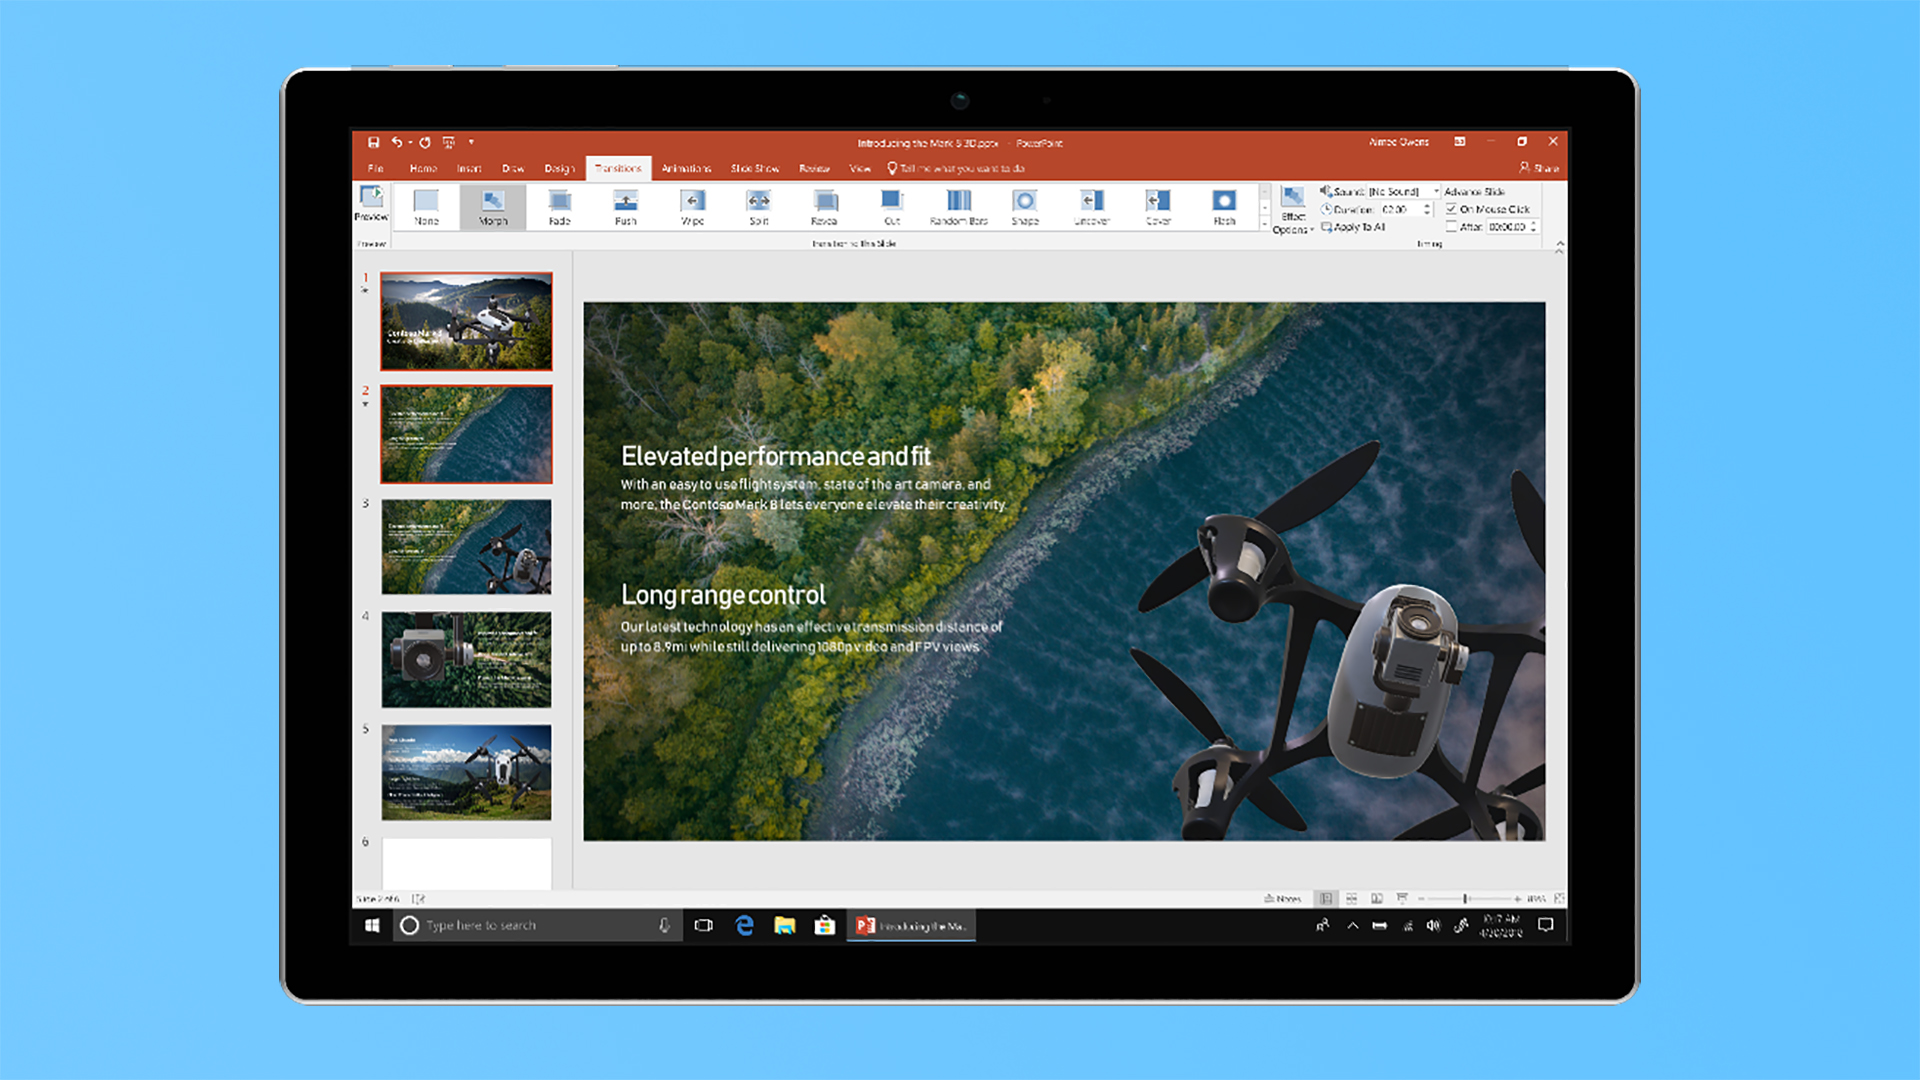 Download Microsoft Office 2019 Office 2016 Office 2013 Office 2010 And Office 365 For Free With Direct Links Techradar